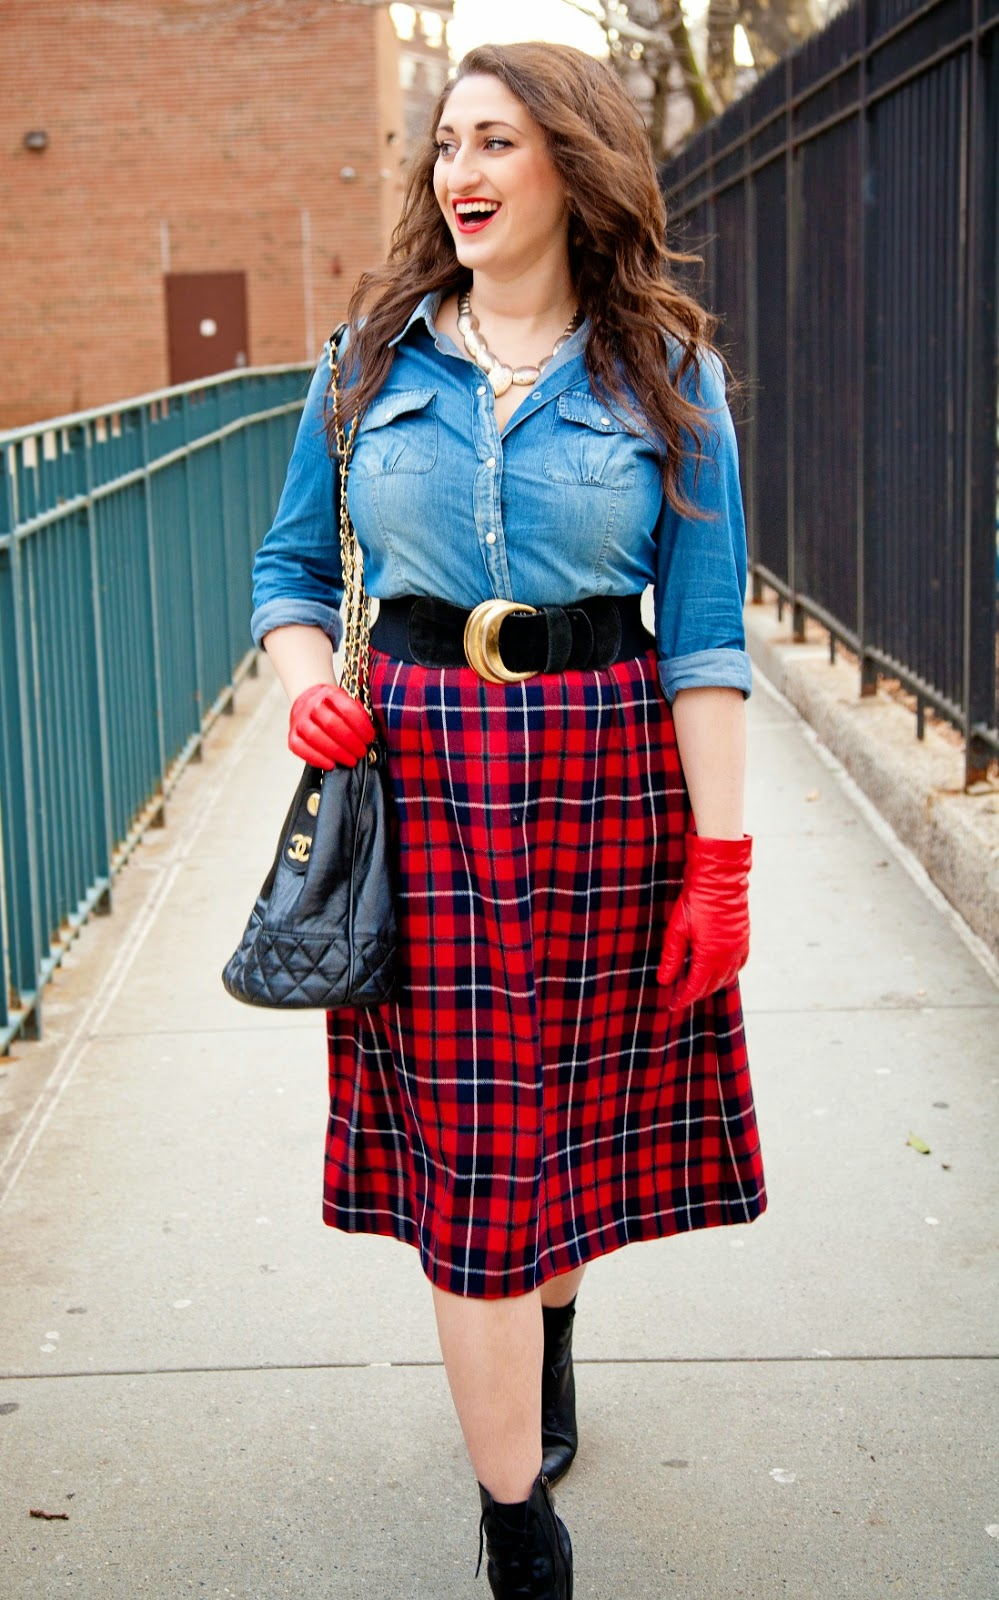 Just Sara Jane: How to Dress Well in Vintage: The $3 Skirt